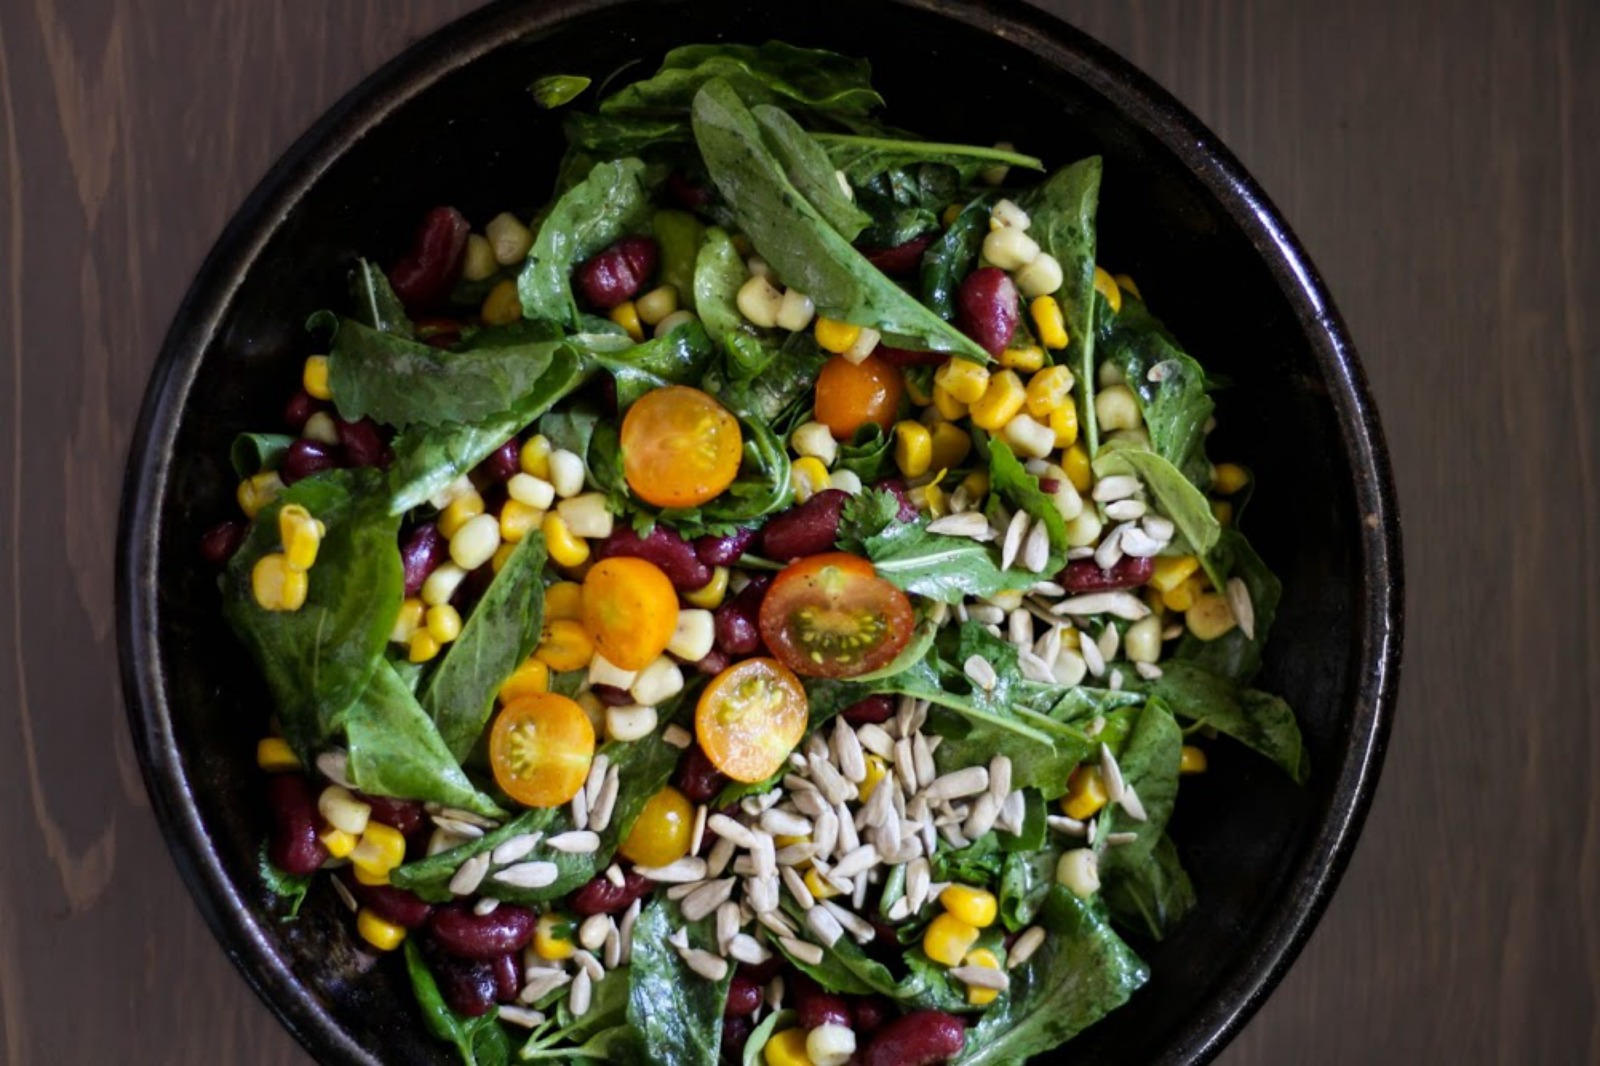 Arugula Basil Salad With Sweet Corn, Red Beans, Lemon + Spices